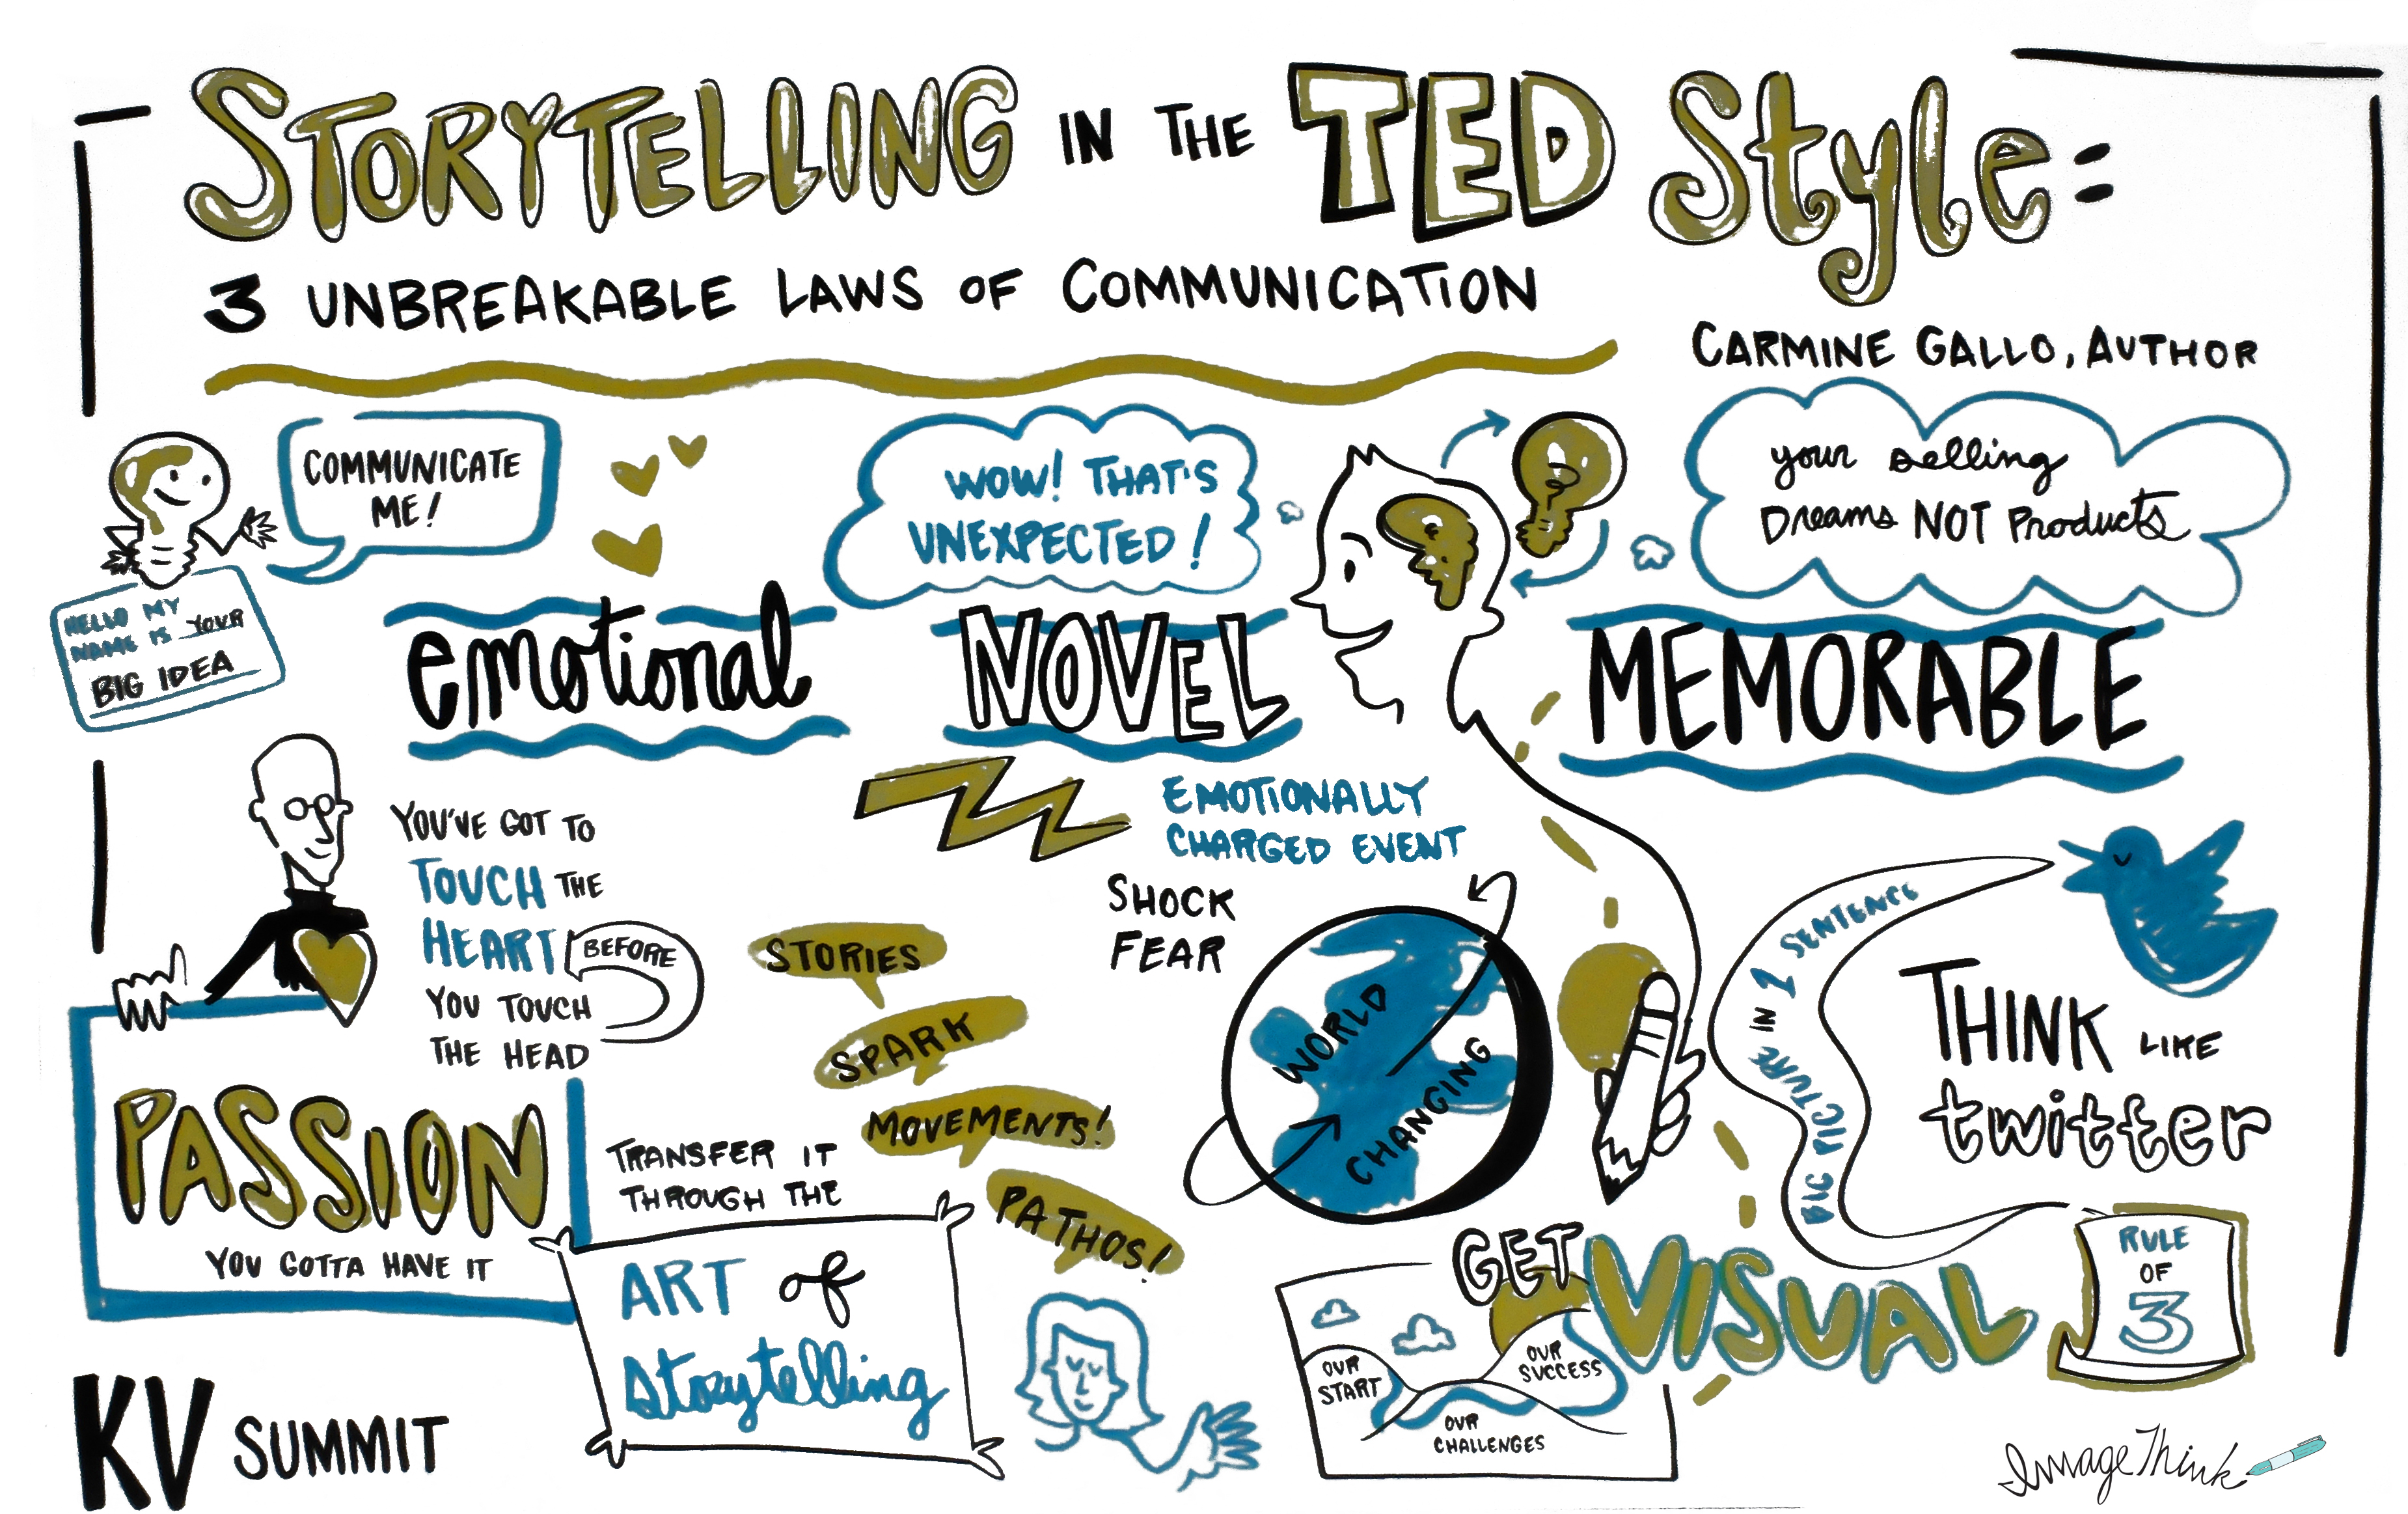 telling a story with photos ideas - The unbreakable laws of storytelling